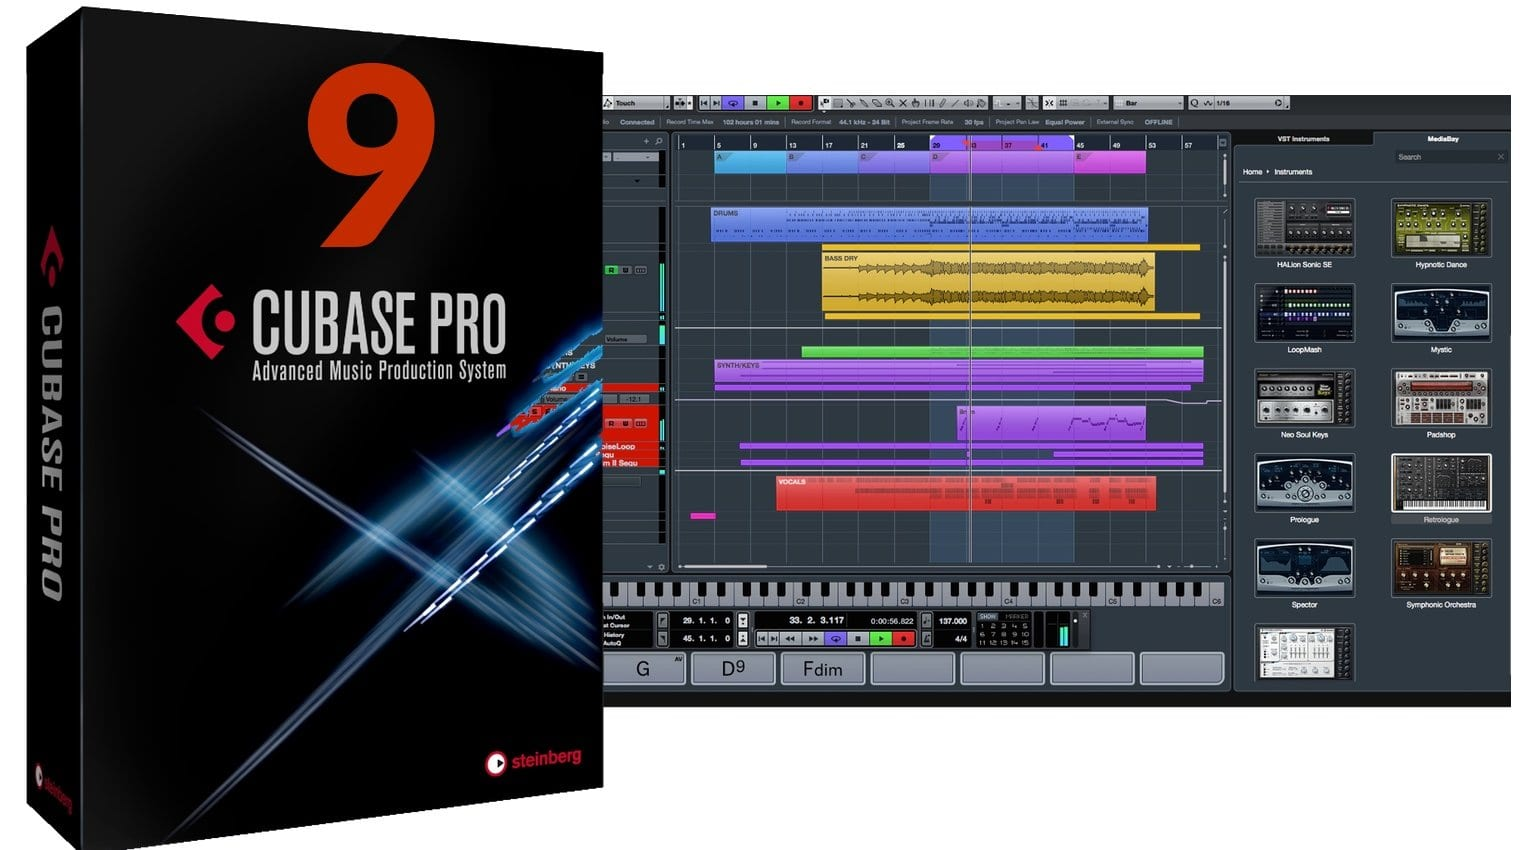 cubase 9 launched steinberg releases major updates for pro artist and elements. Black Bedroom Furniture Sets. Home Design Ideas